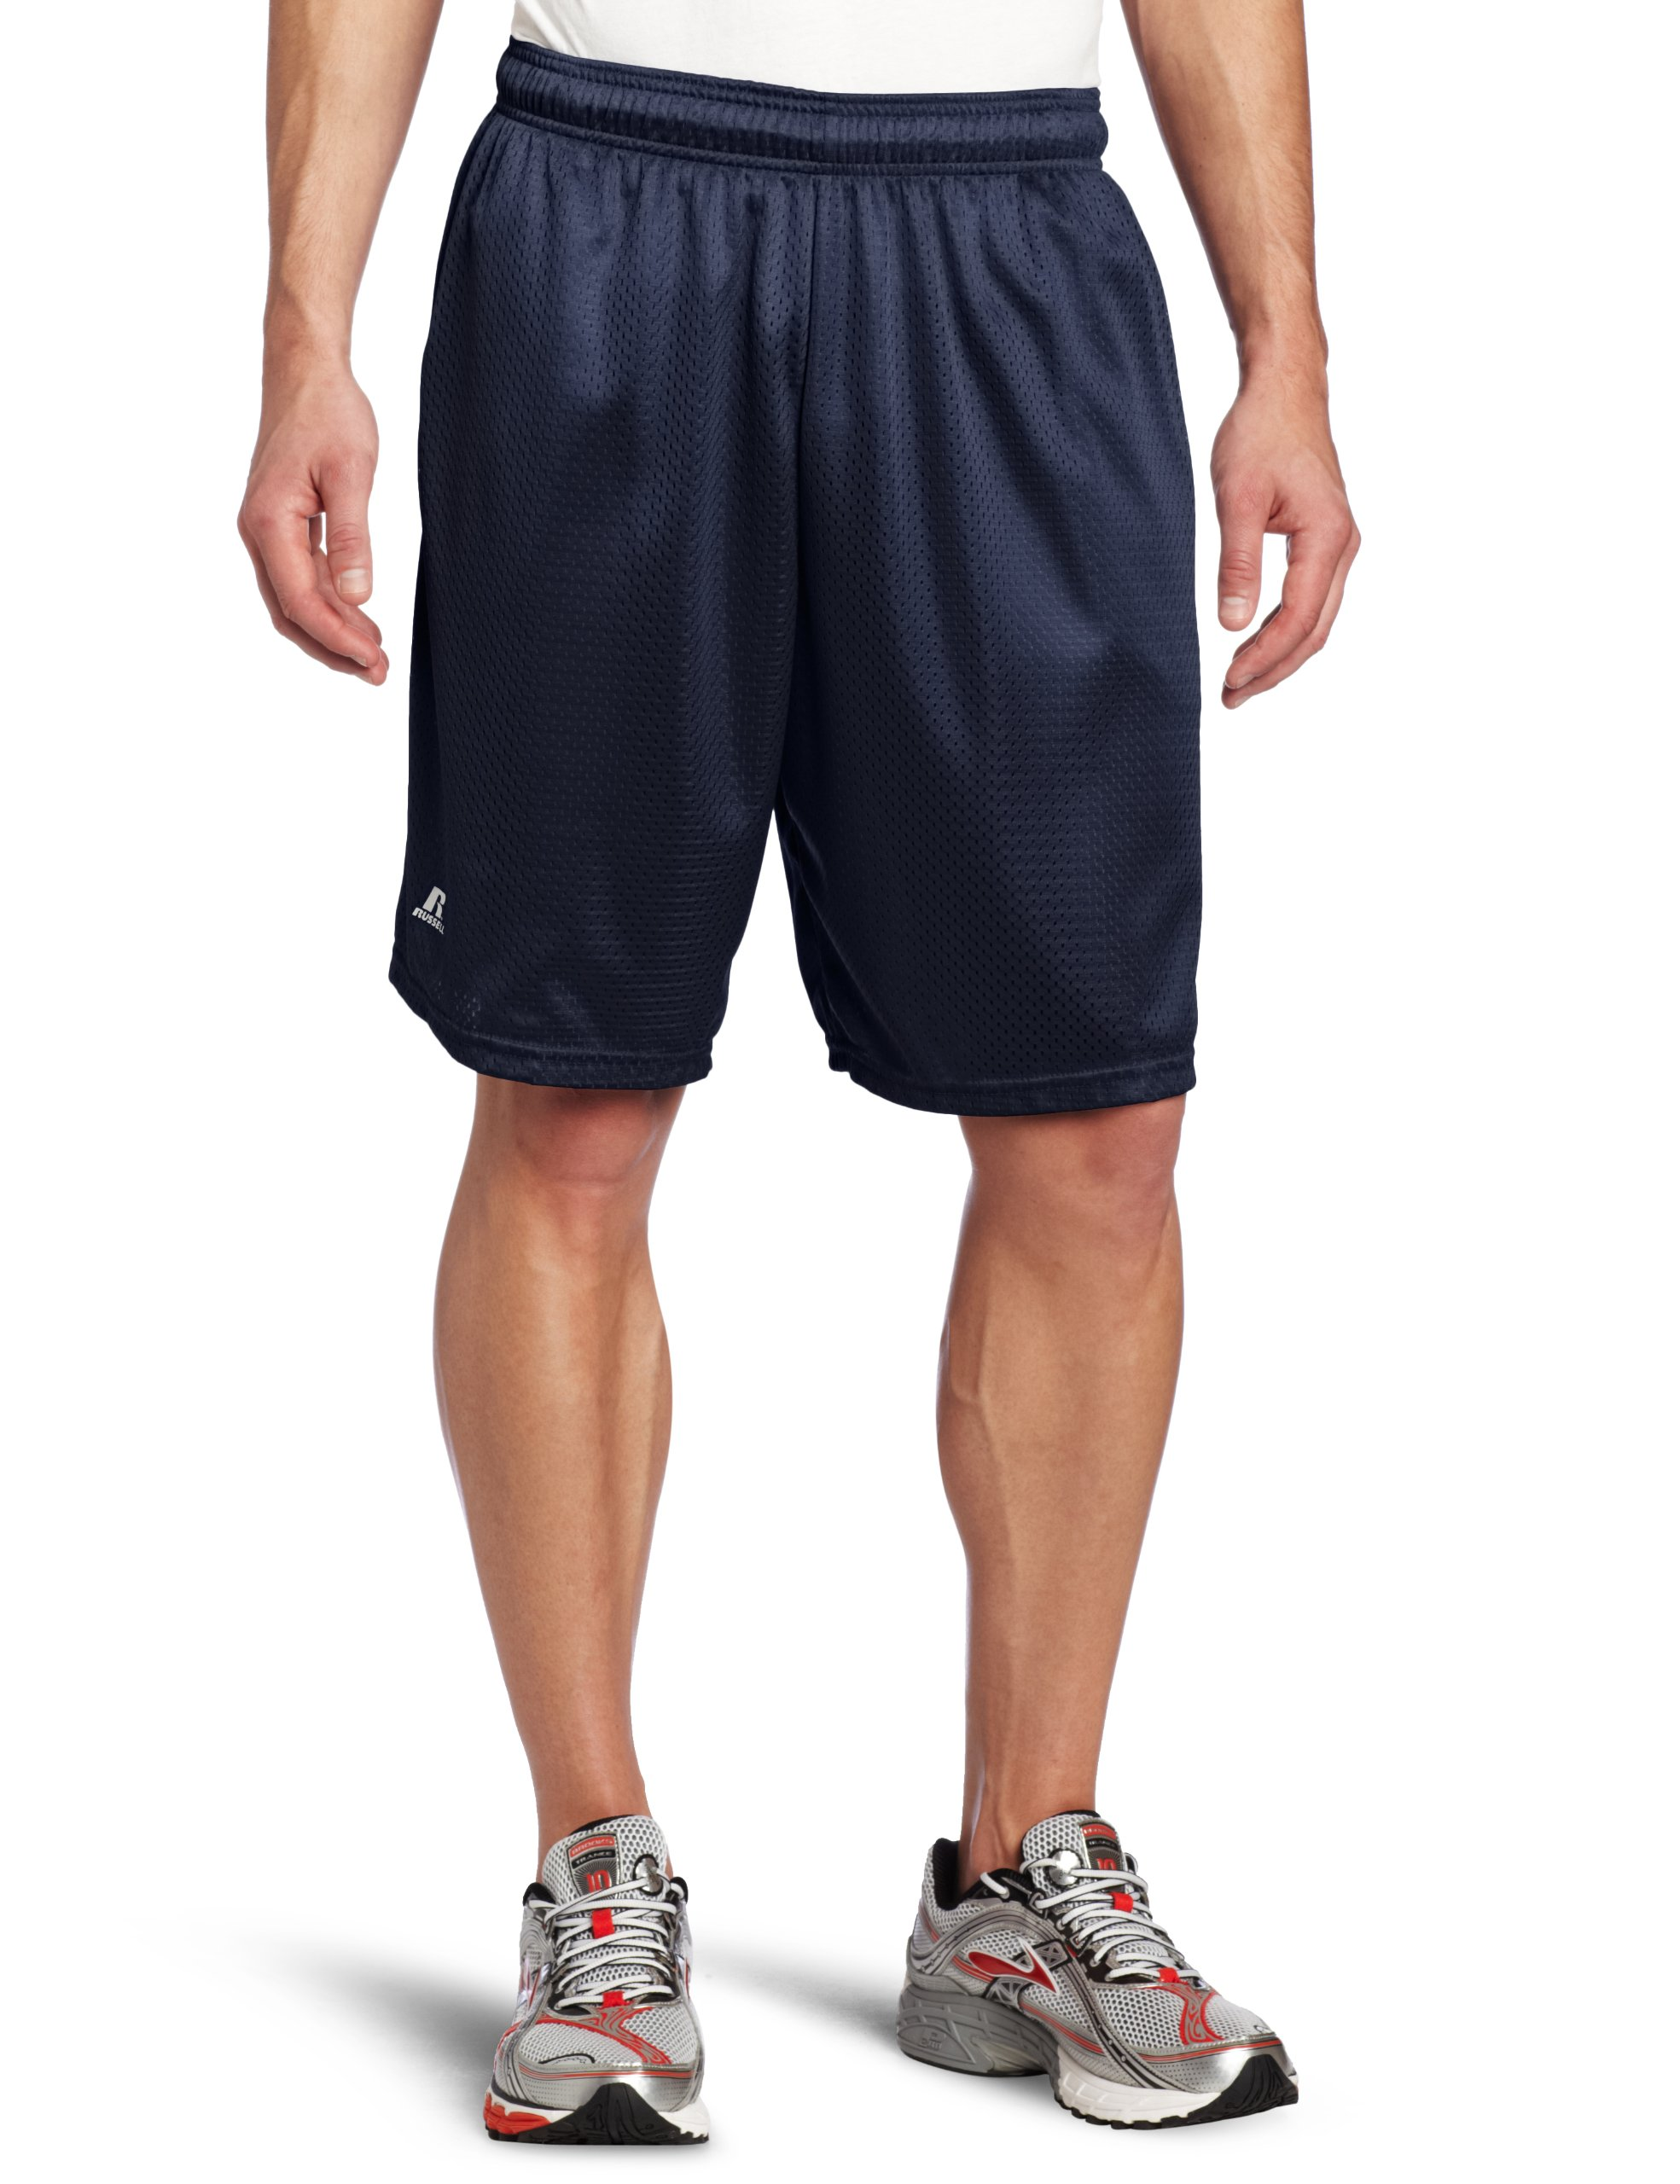 Russell Athletic Men's Mesh Short with Pockets, Navy, 3X-Large